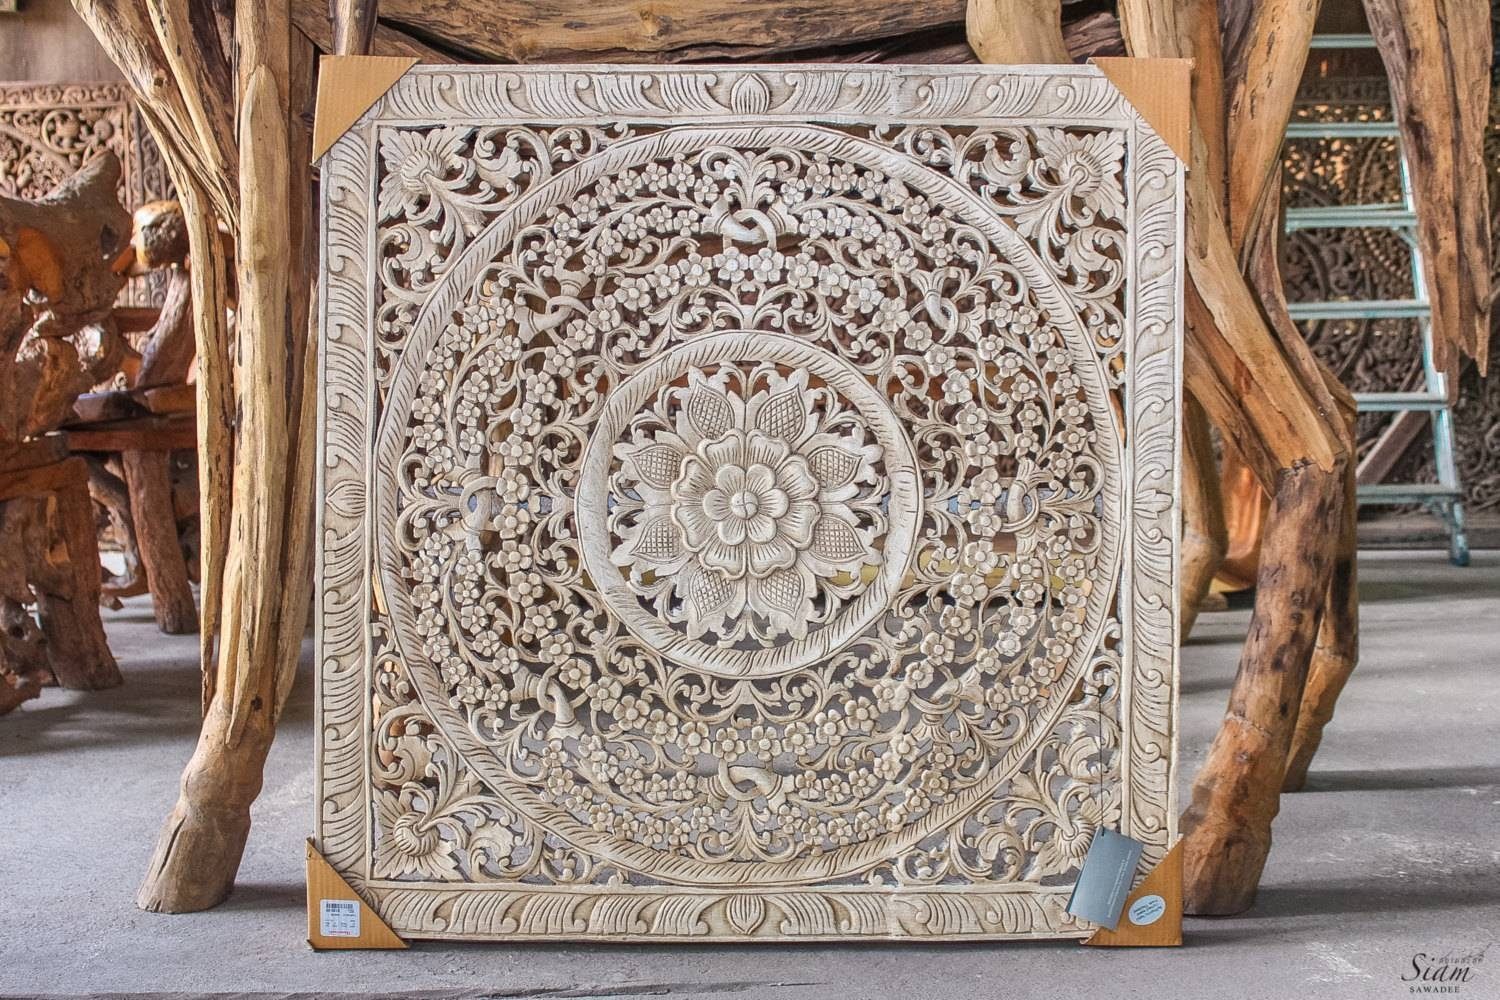 35 Carved Wood Panel Wall Art, Ornate Carved Wood Panel Wall Art Regarding Most Recent Bali Metal Wall Art (View 1 of 20)